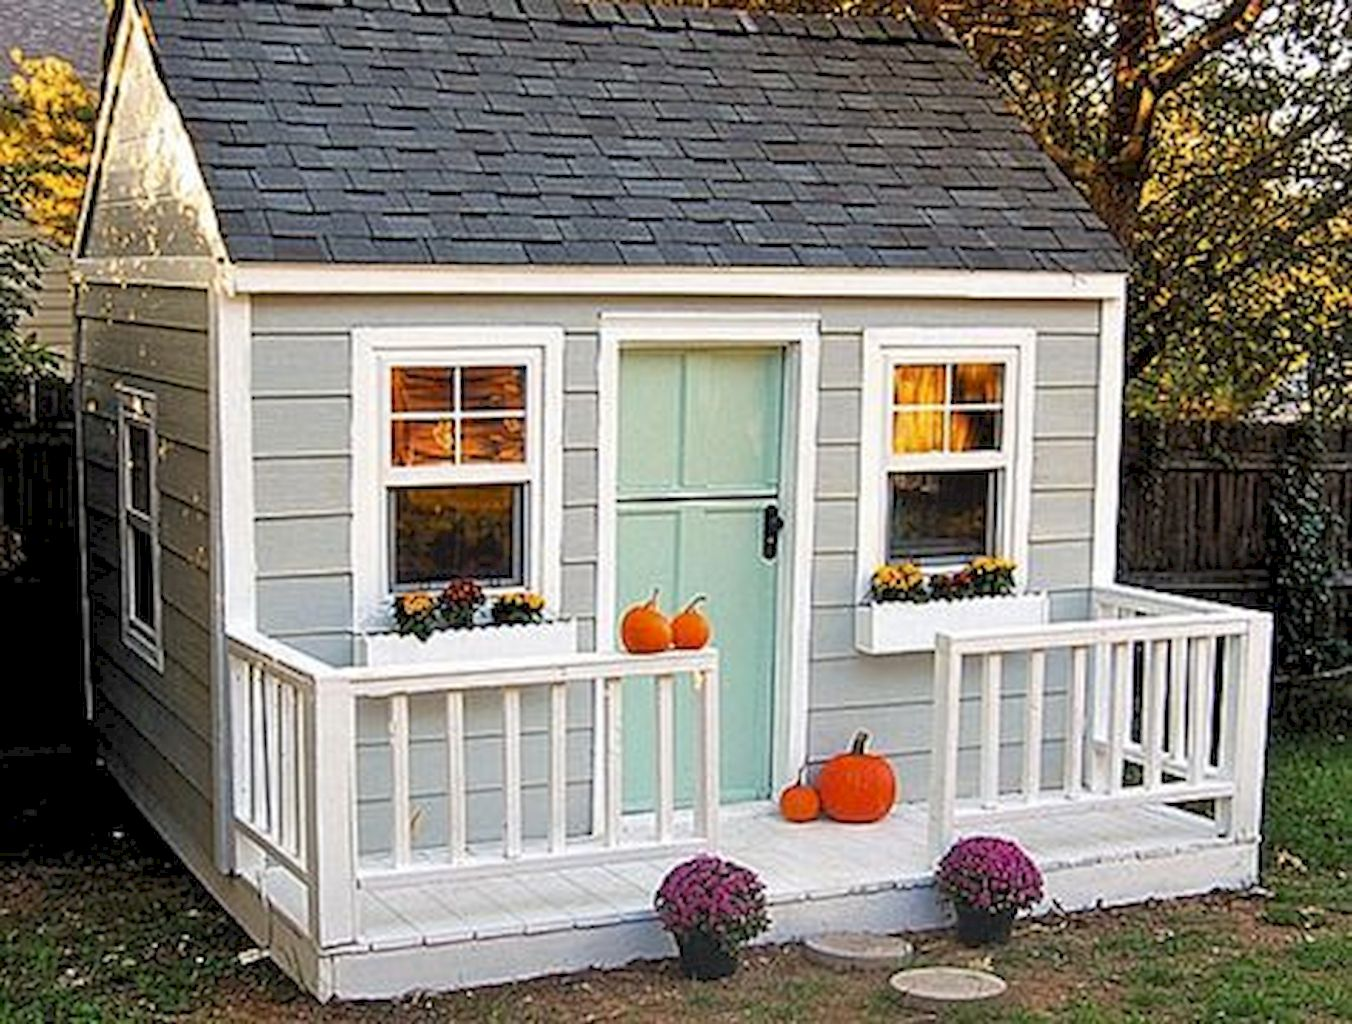 Shocking Playhouse Plan Into Your Existing Backyard Space